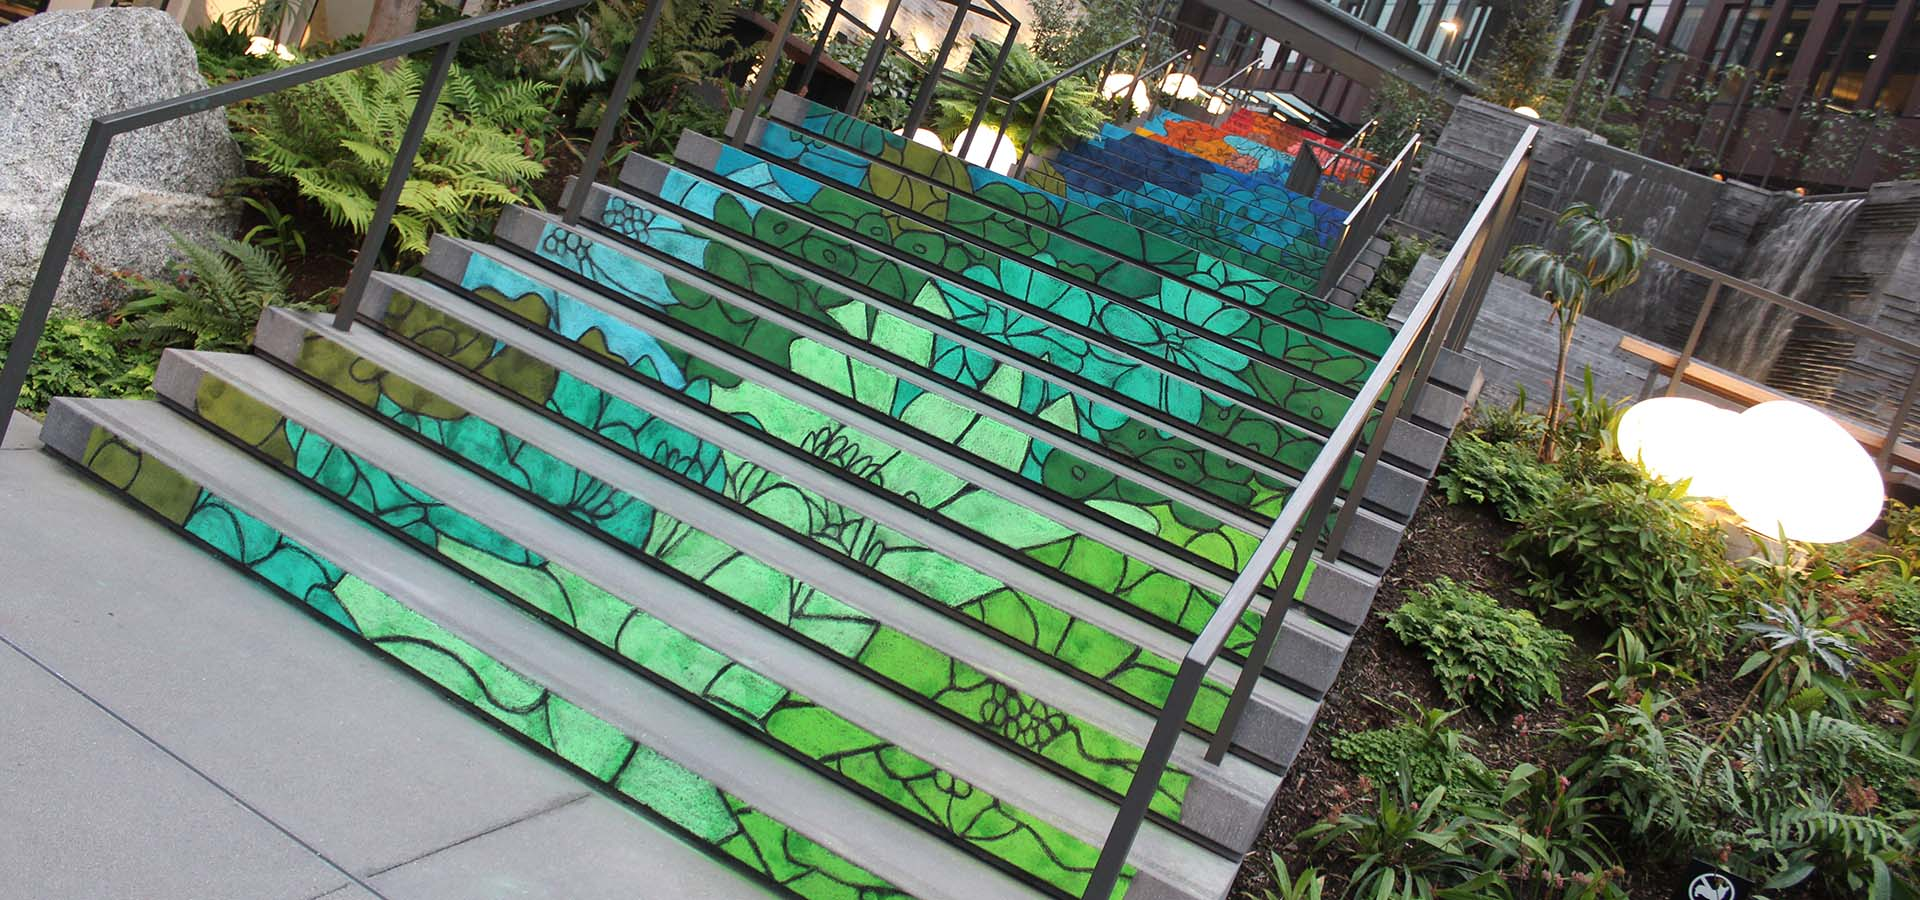 Chalk art by artist Josephine Rice on exterior steps at Amazon's Re:Invent building